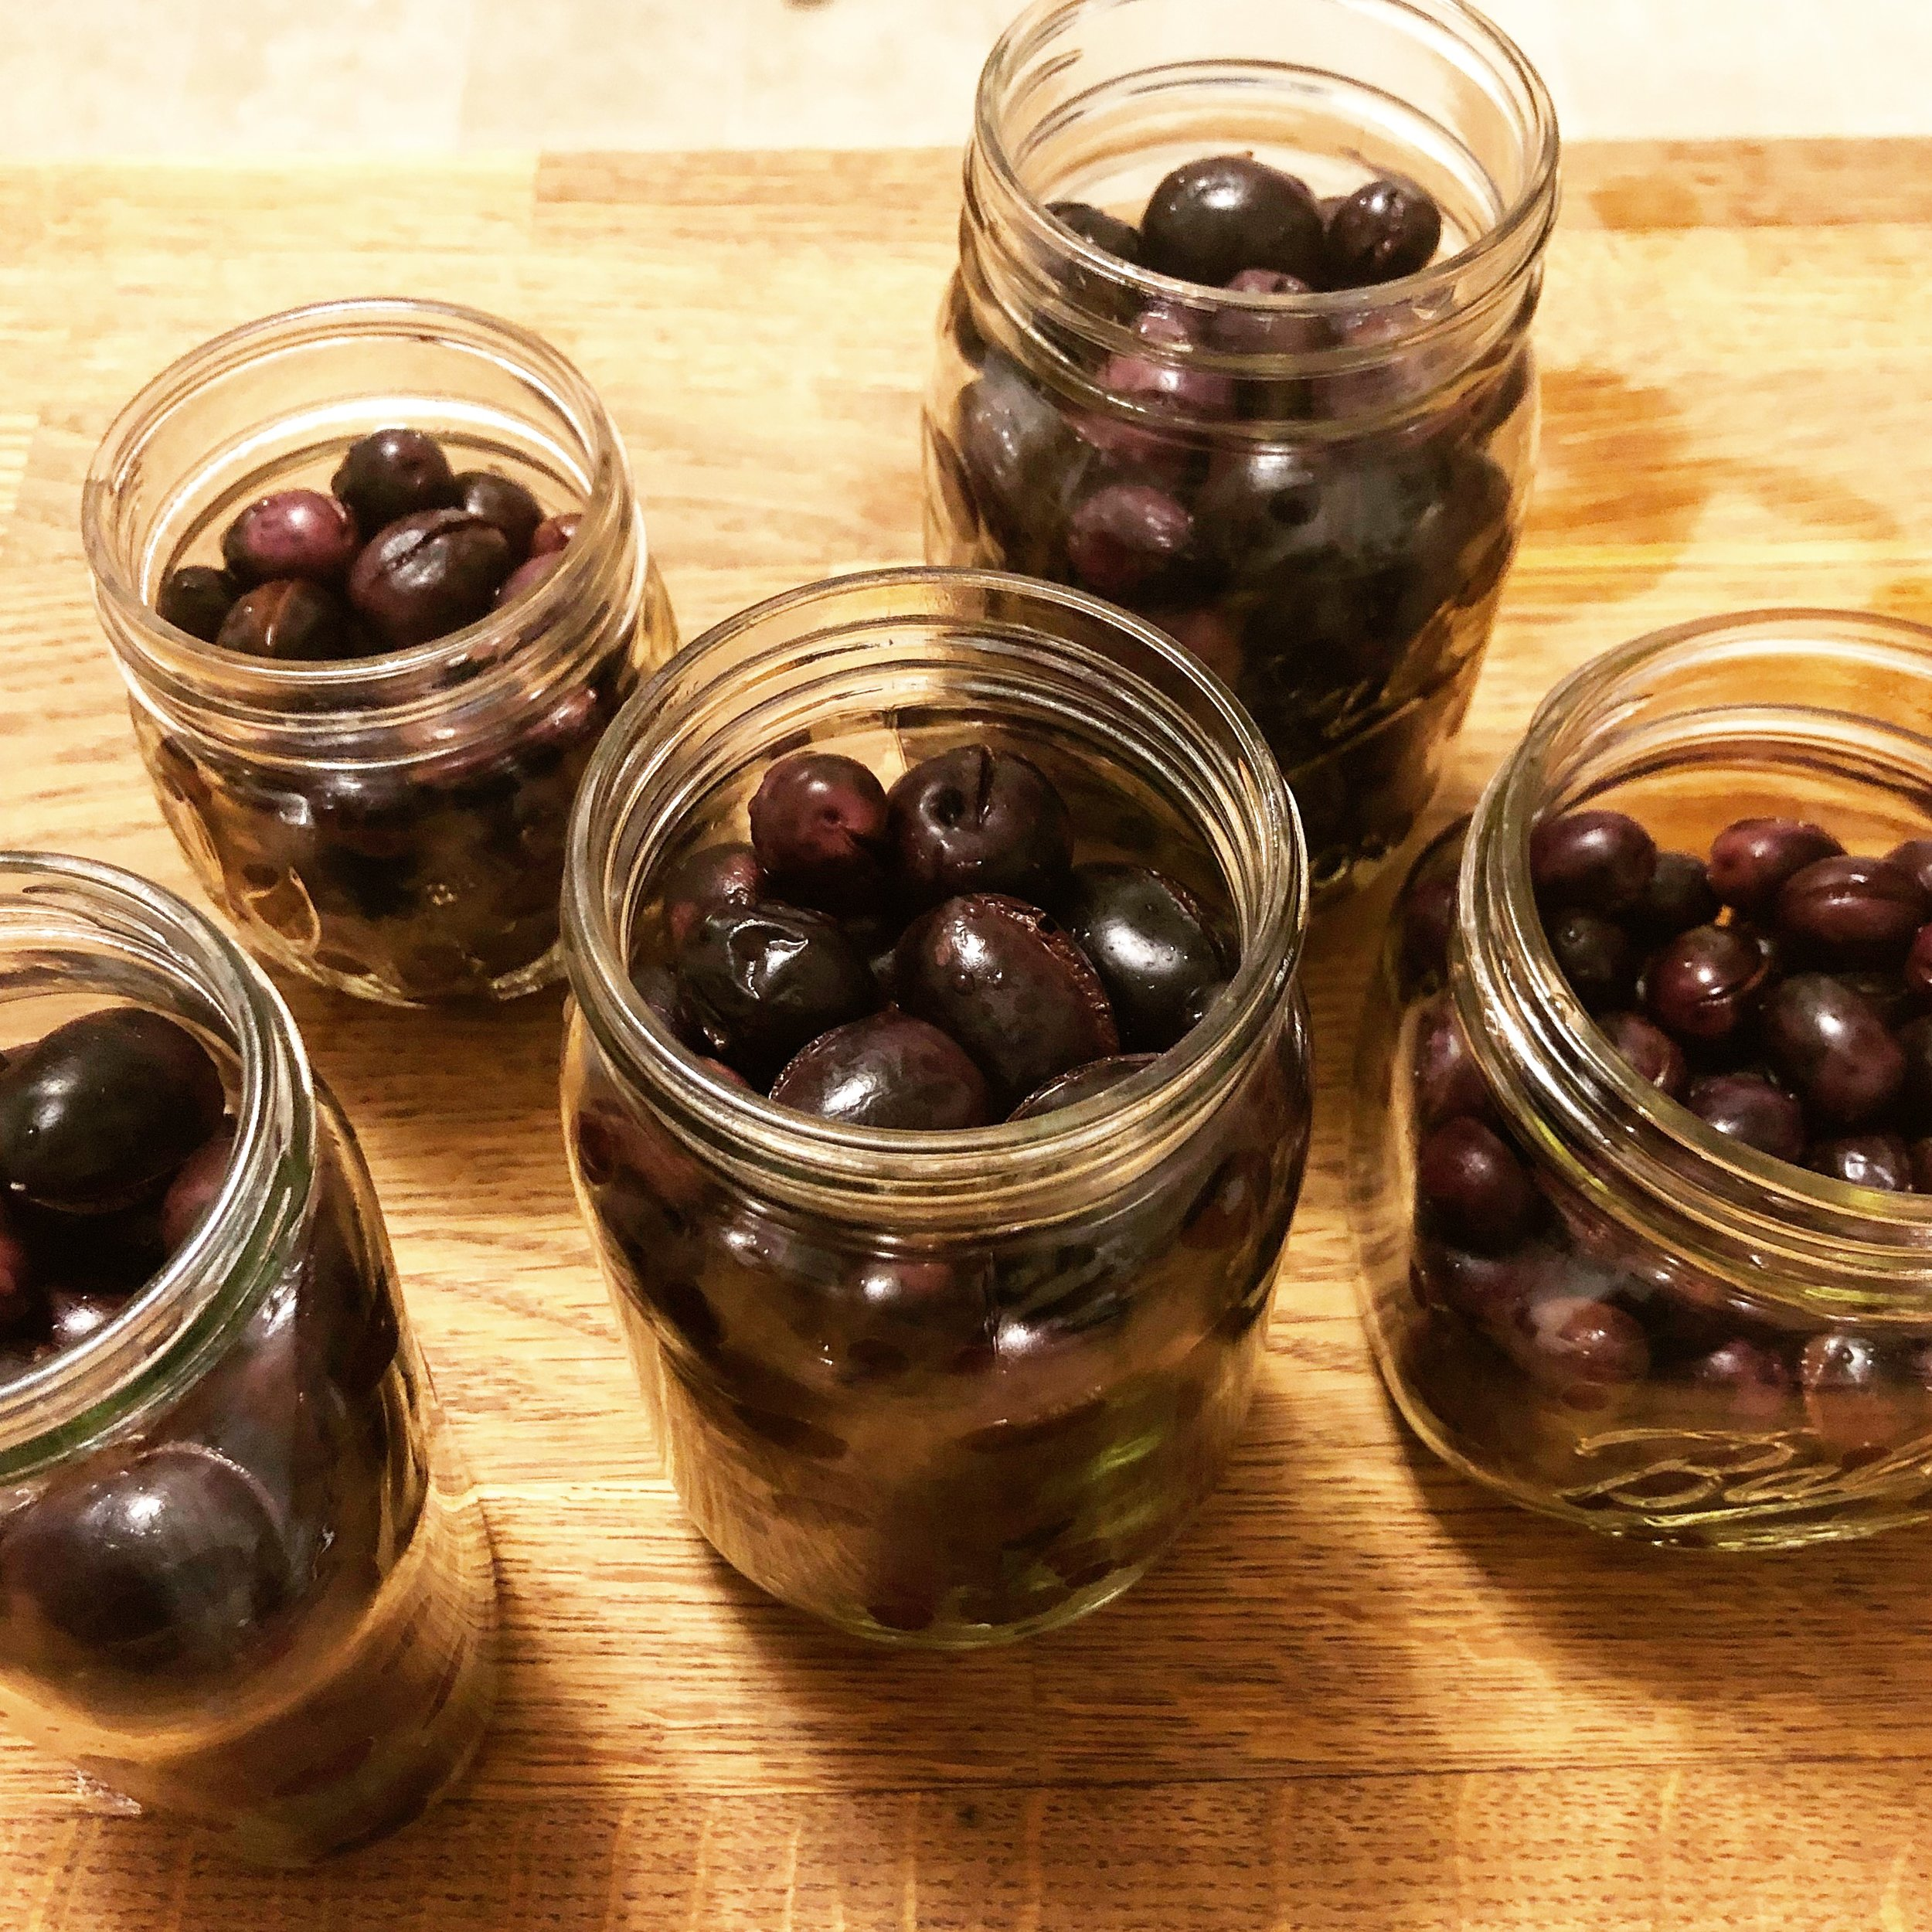 These homemade olives were picked in Folsom, CA at an abandoned orchard.